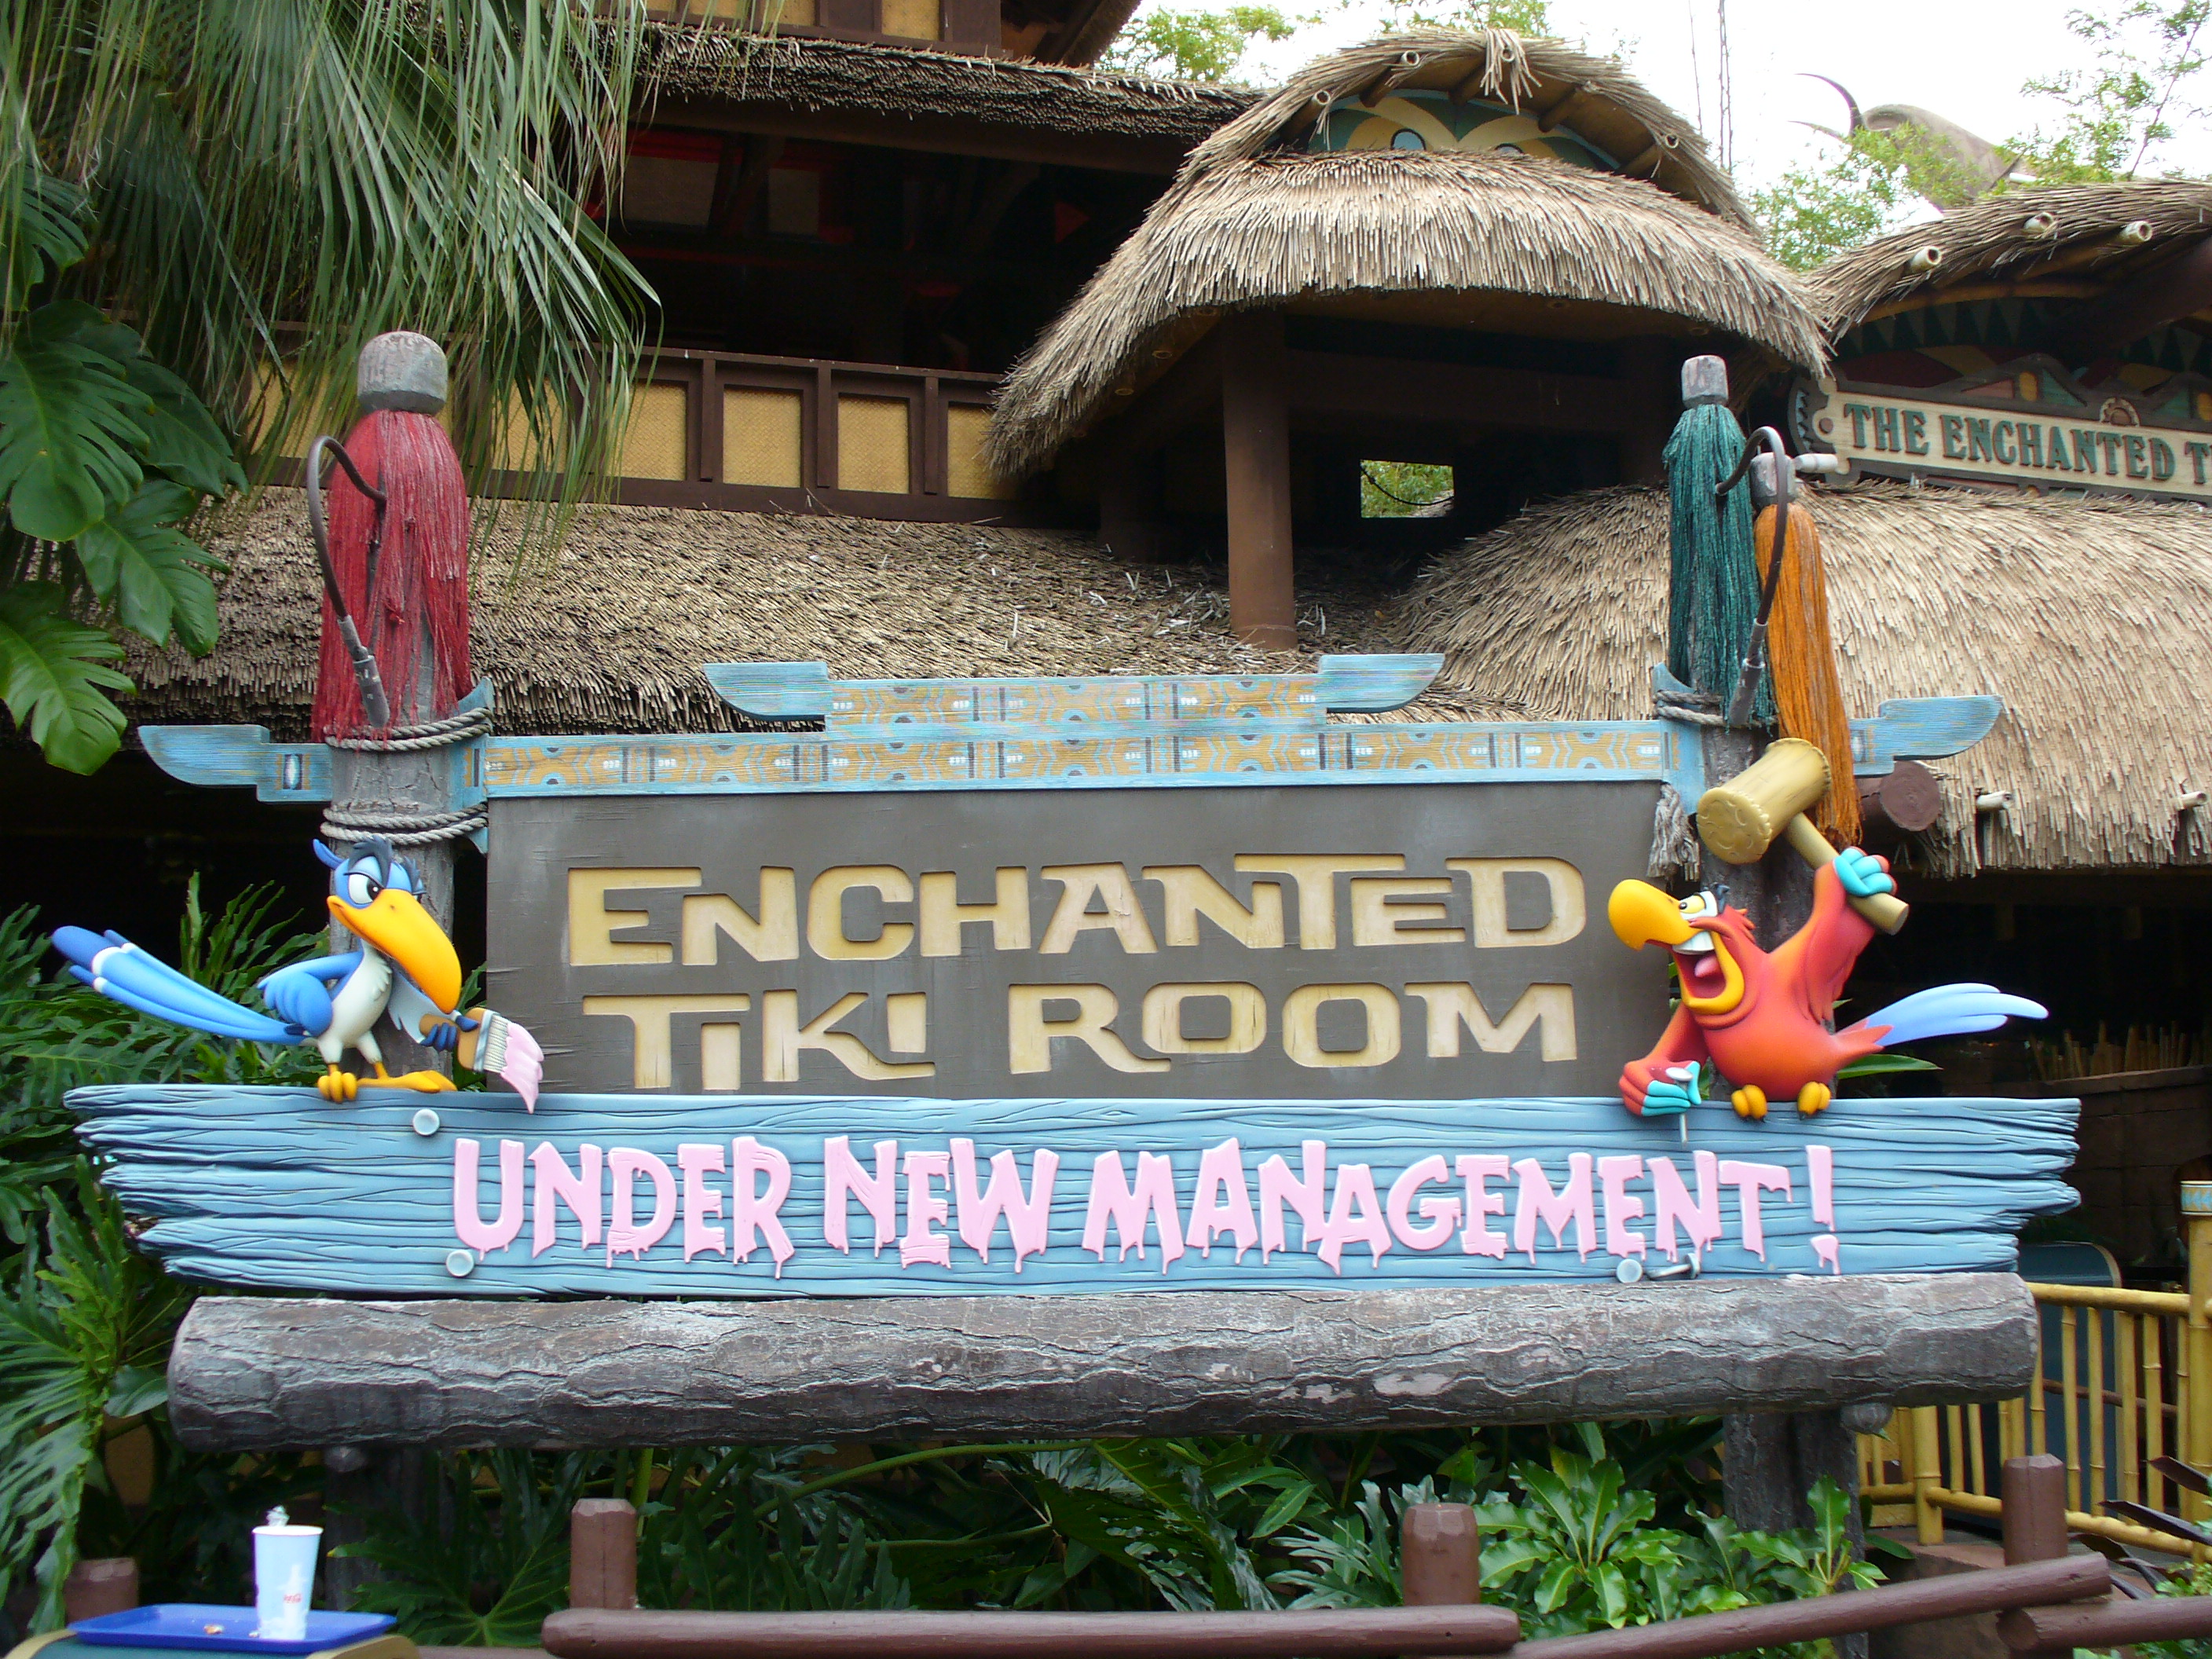 The Enchanted Tiki Room (Under New Management)